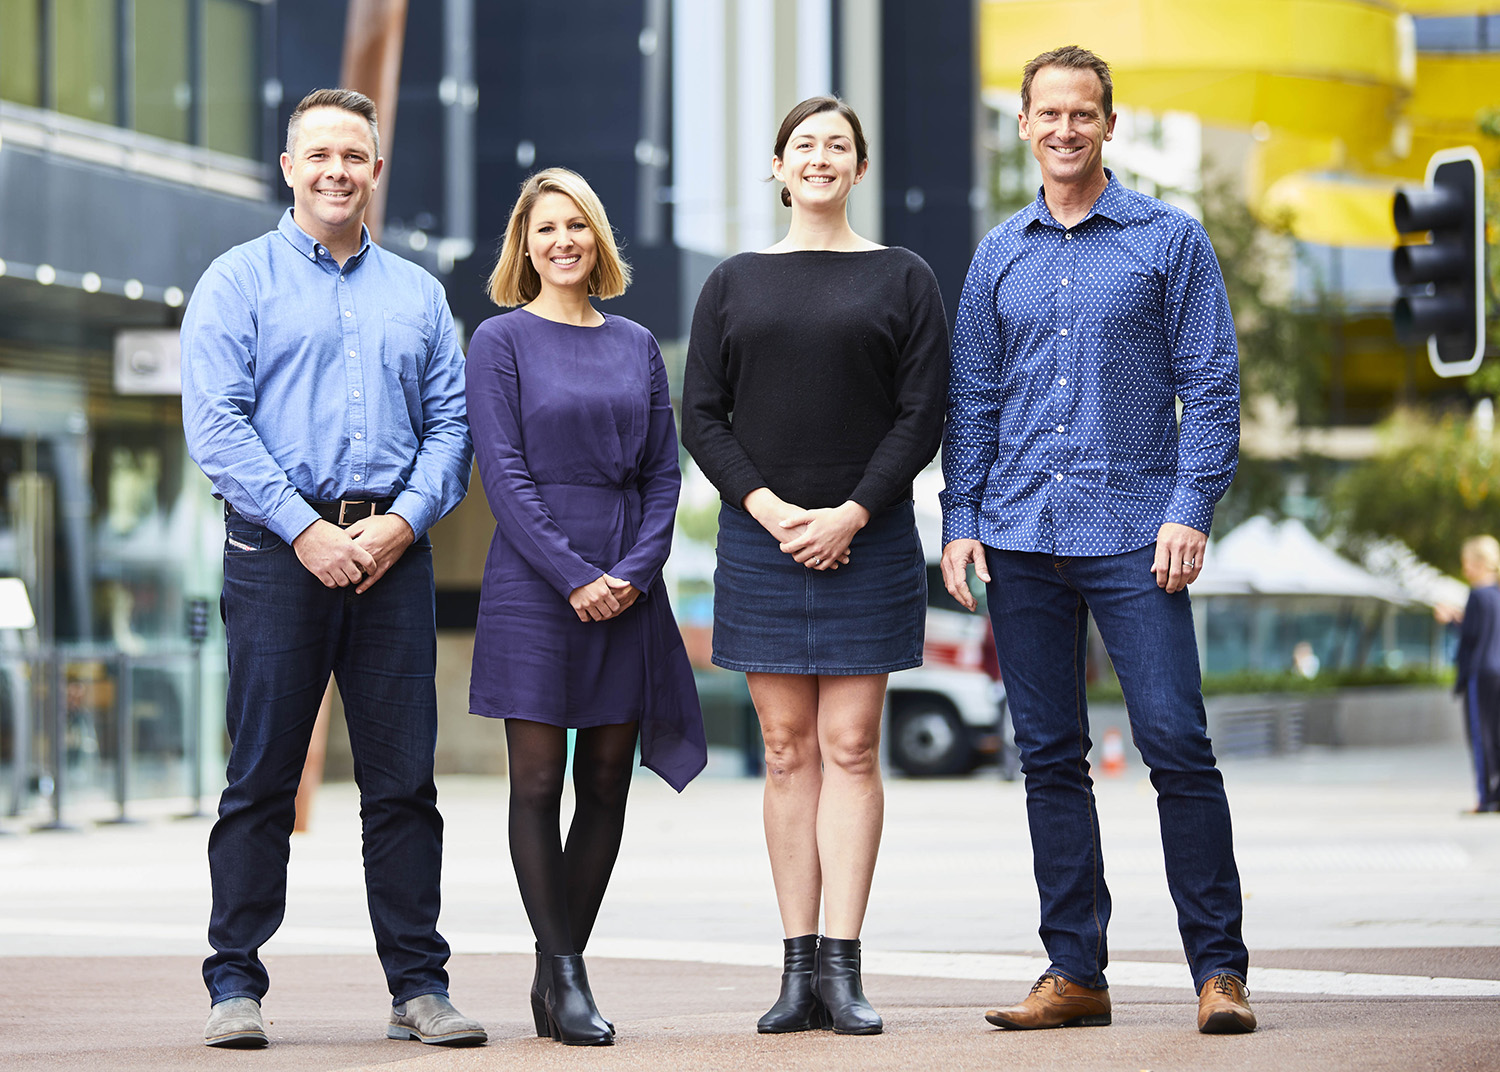 The Brand Agency welcomes three new senior hires to its account management team